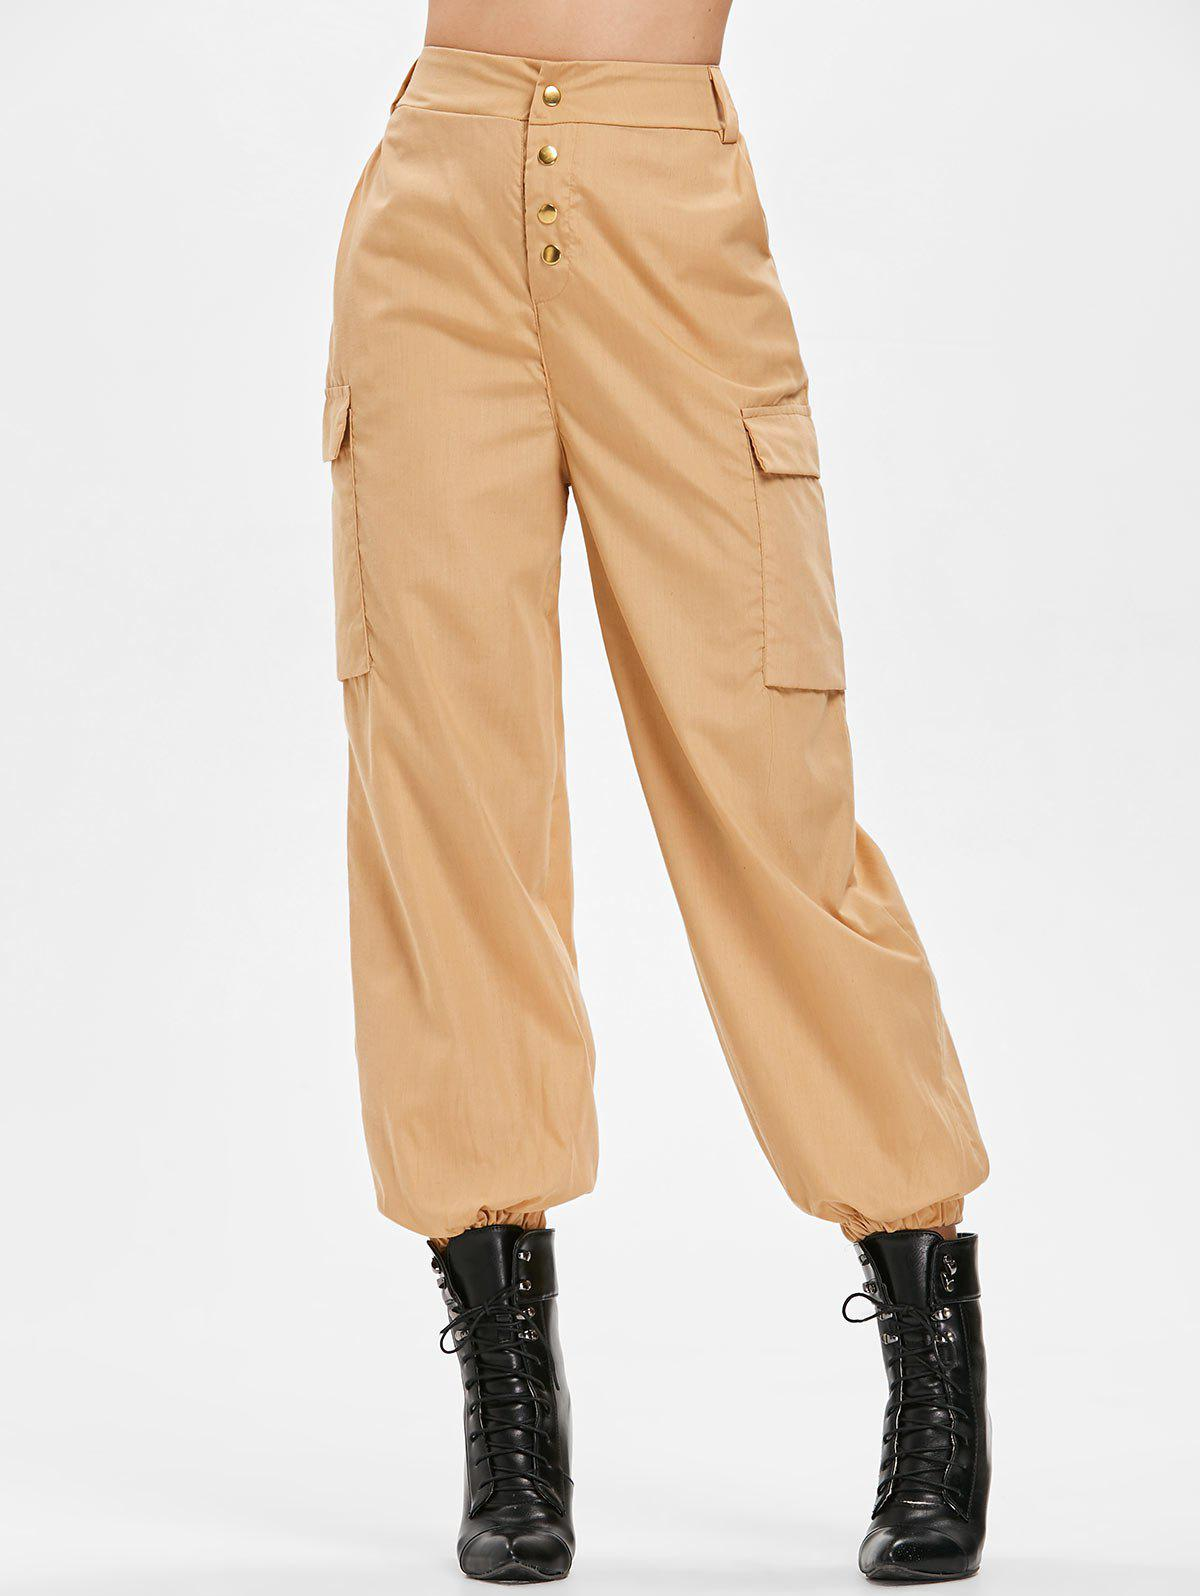 Chic Side Pockets Elastic Waist Pants